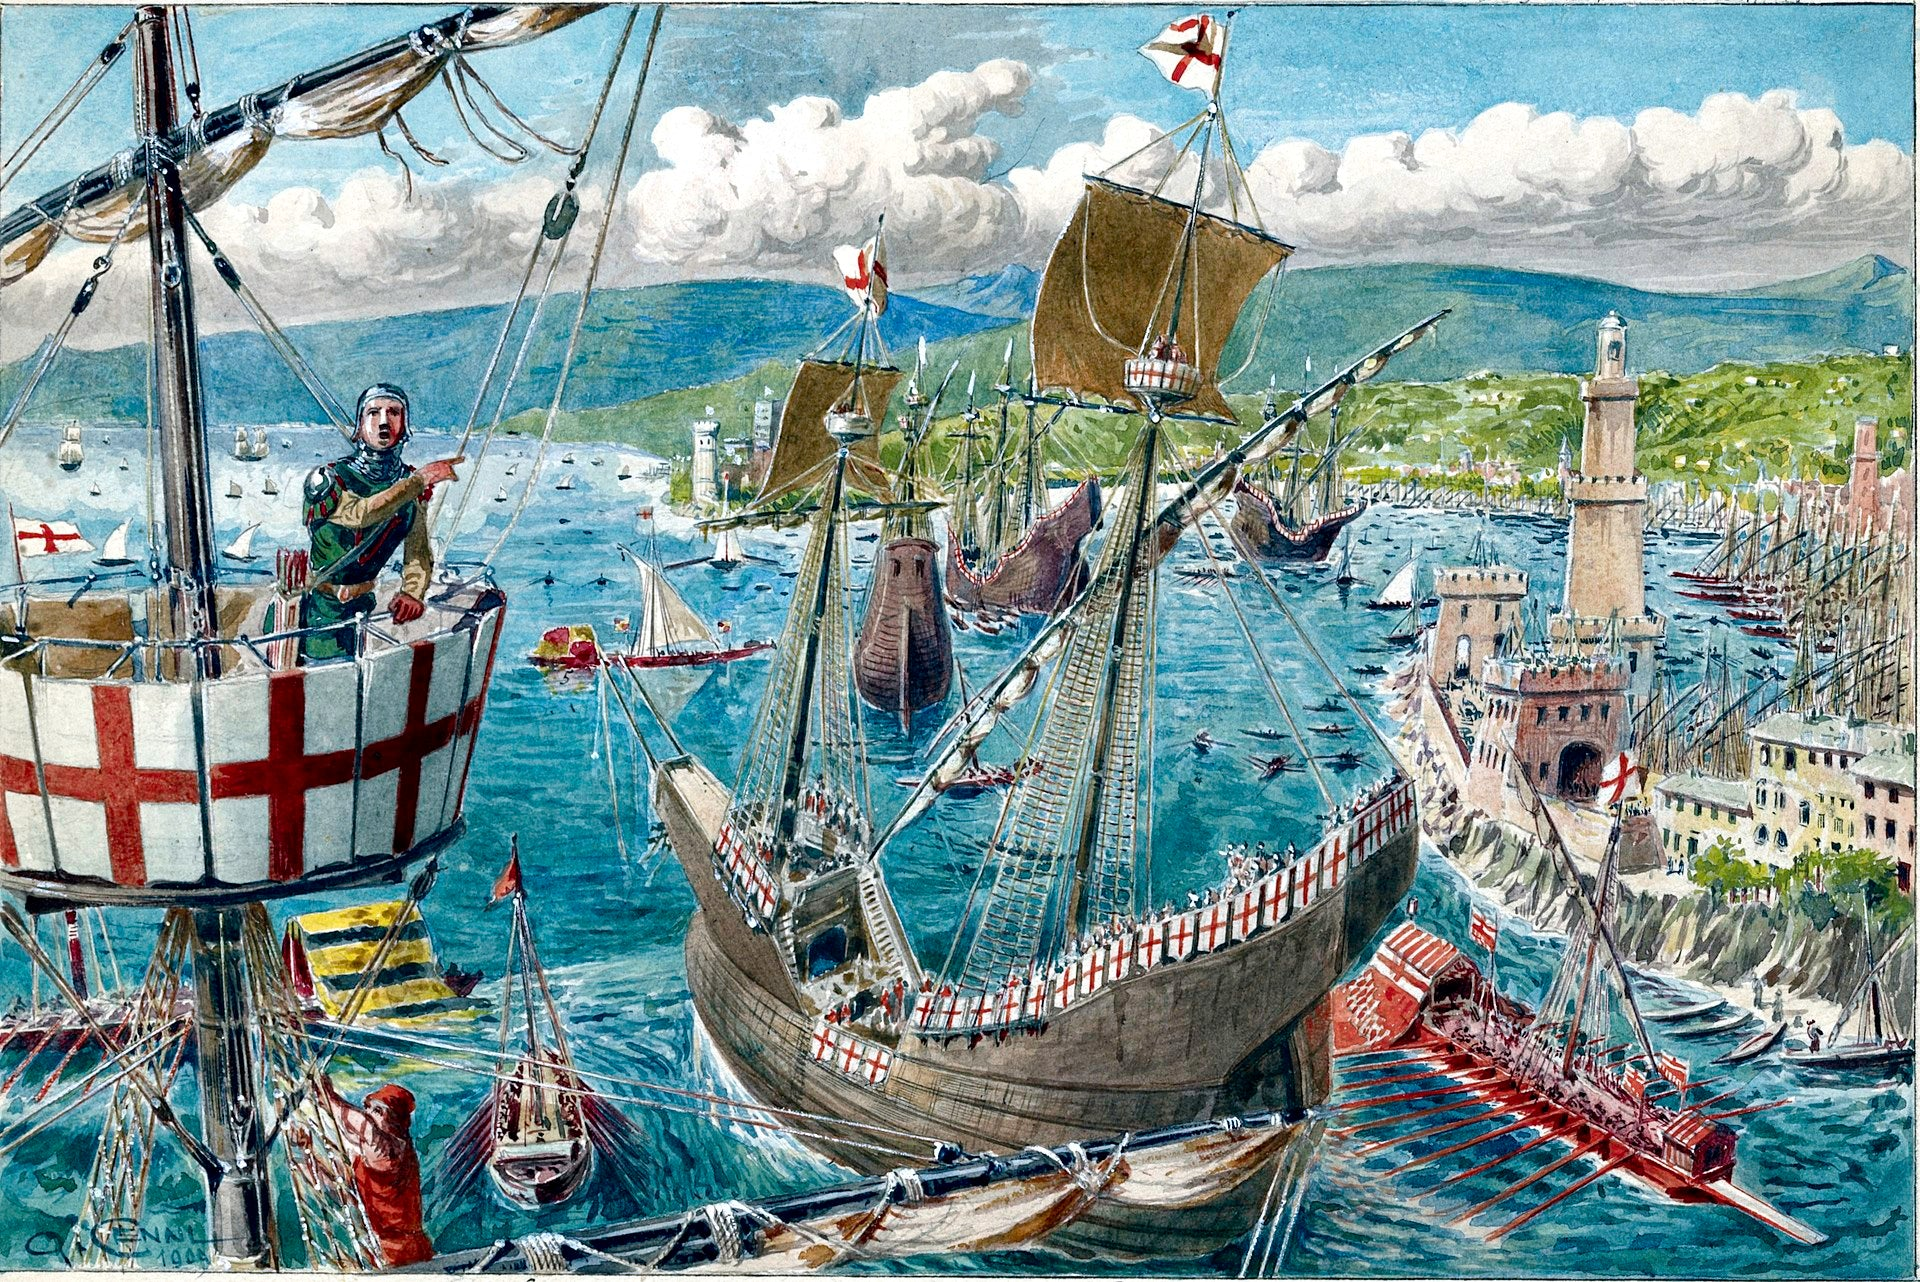 A painting showing the port and fleet of Genoa in the 14th century